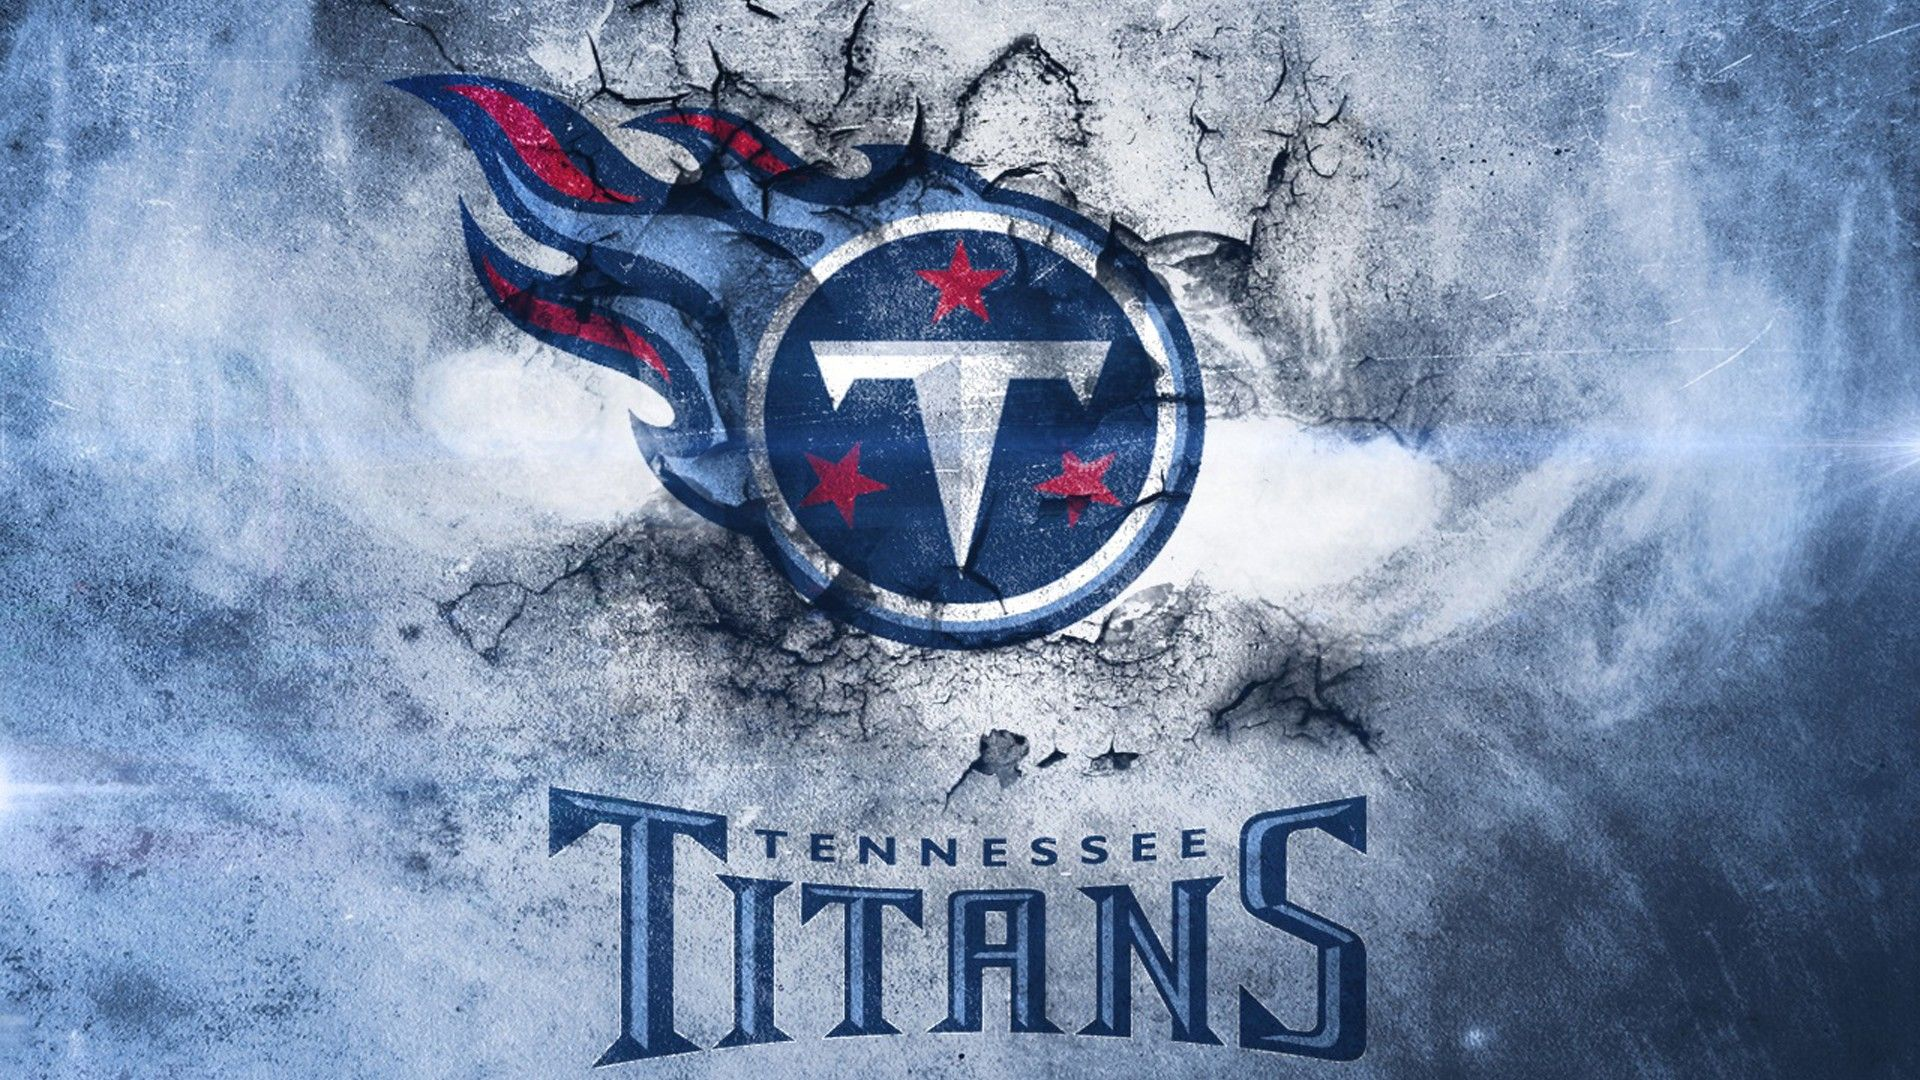 HD Tennessee Titans Backgrounds Titans football